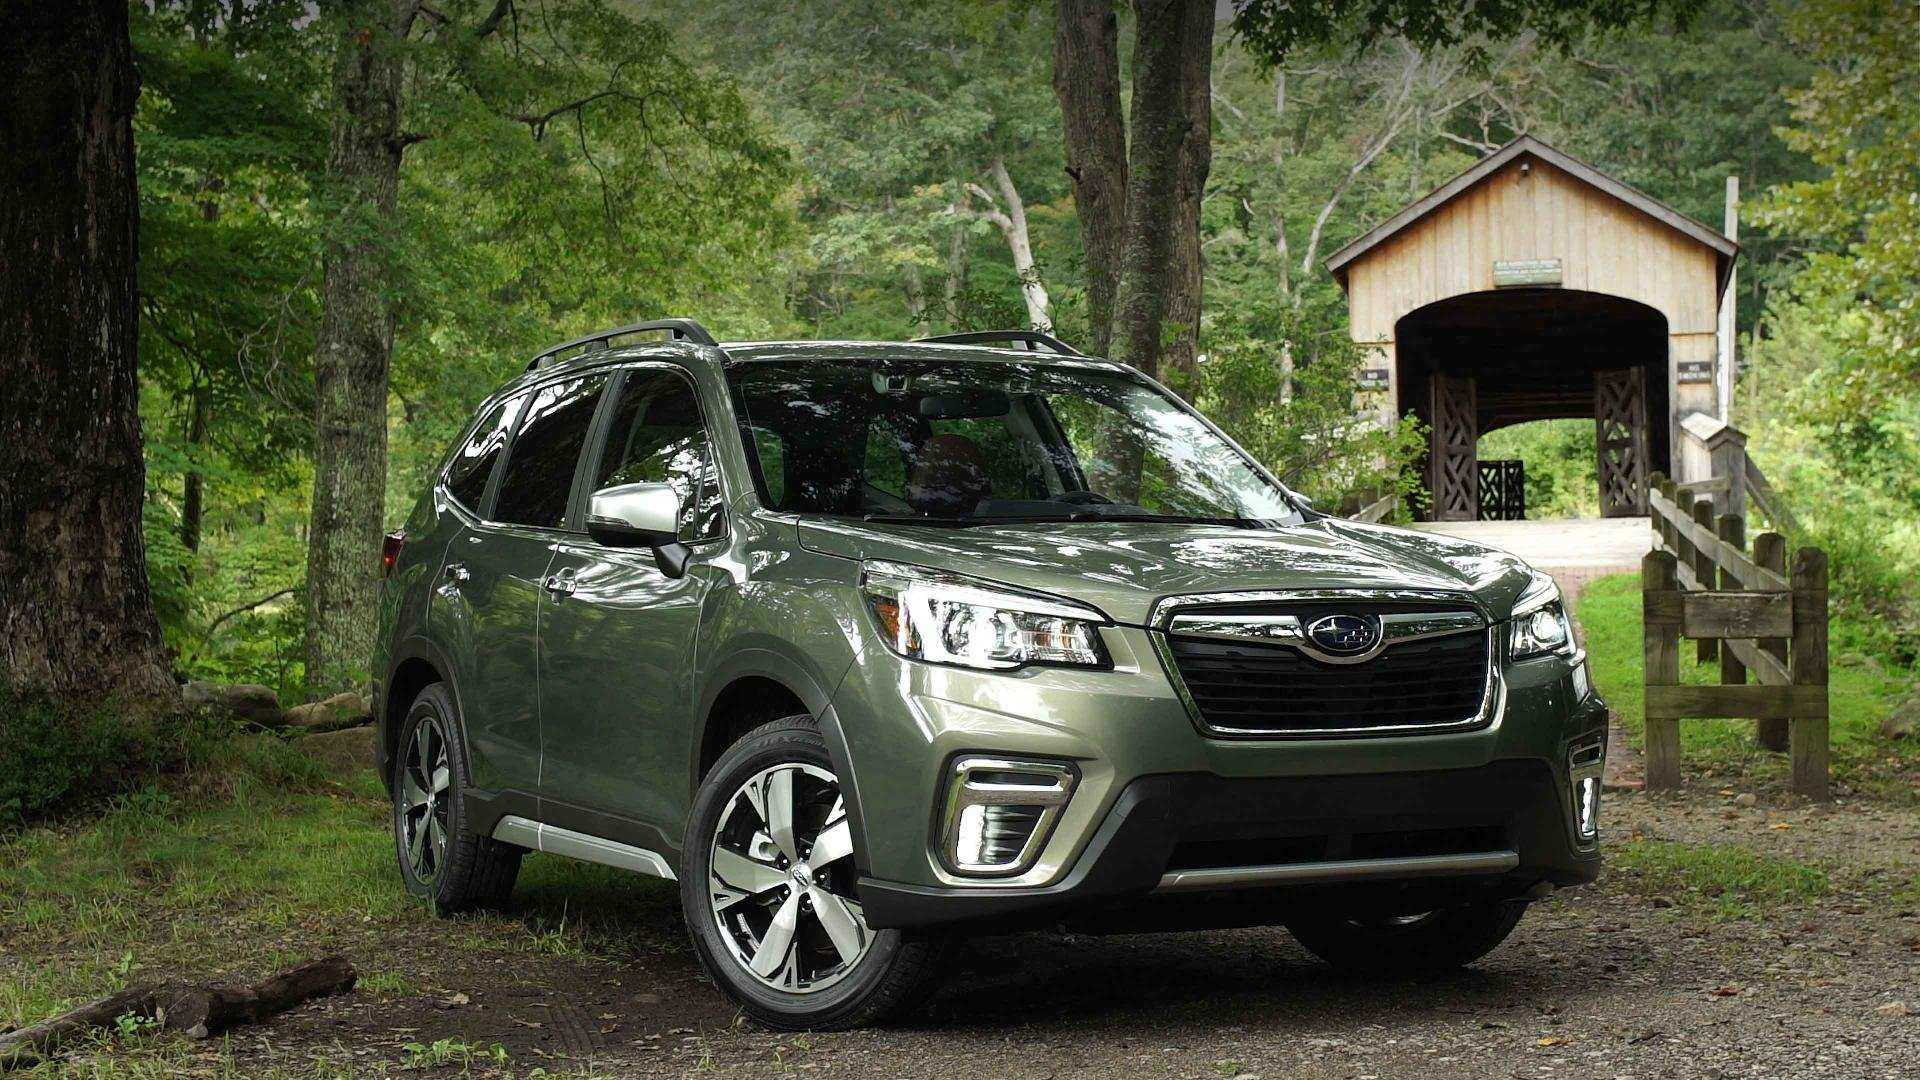 69 Great 2019 Subaru Forester Xt Touring Model by 2019 Subaru Forester Xt Touring